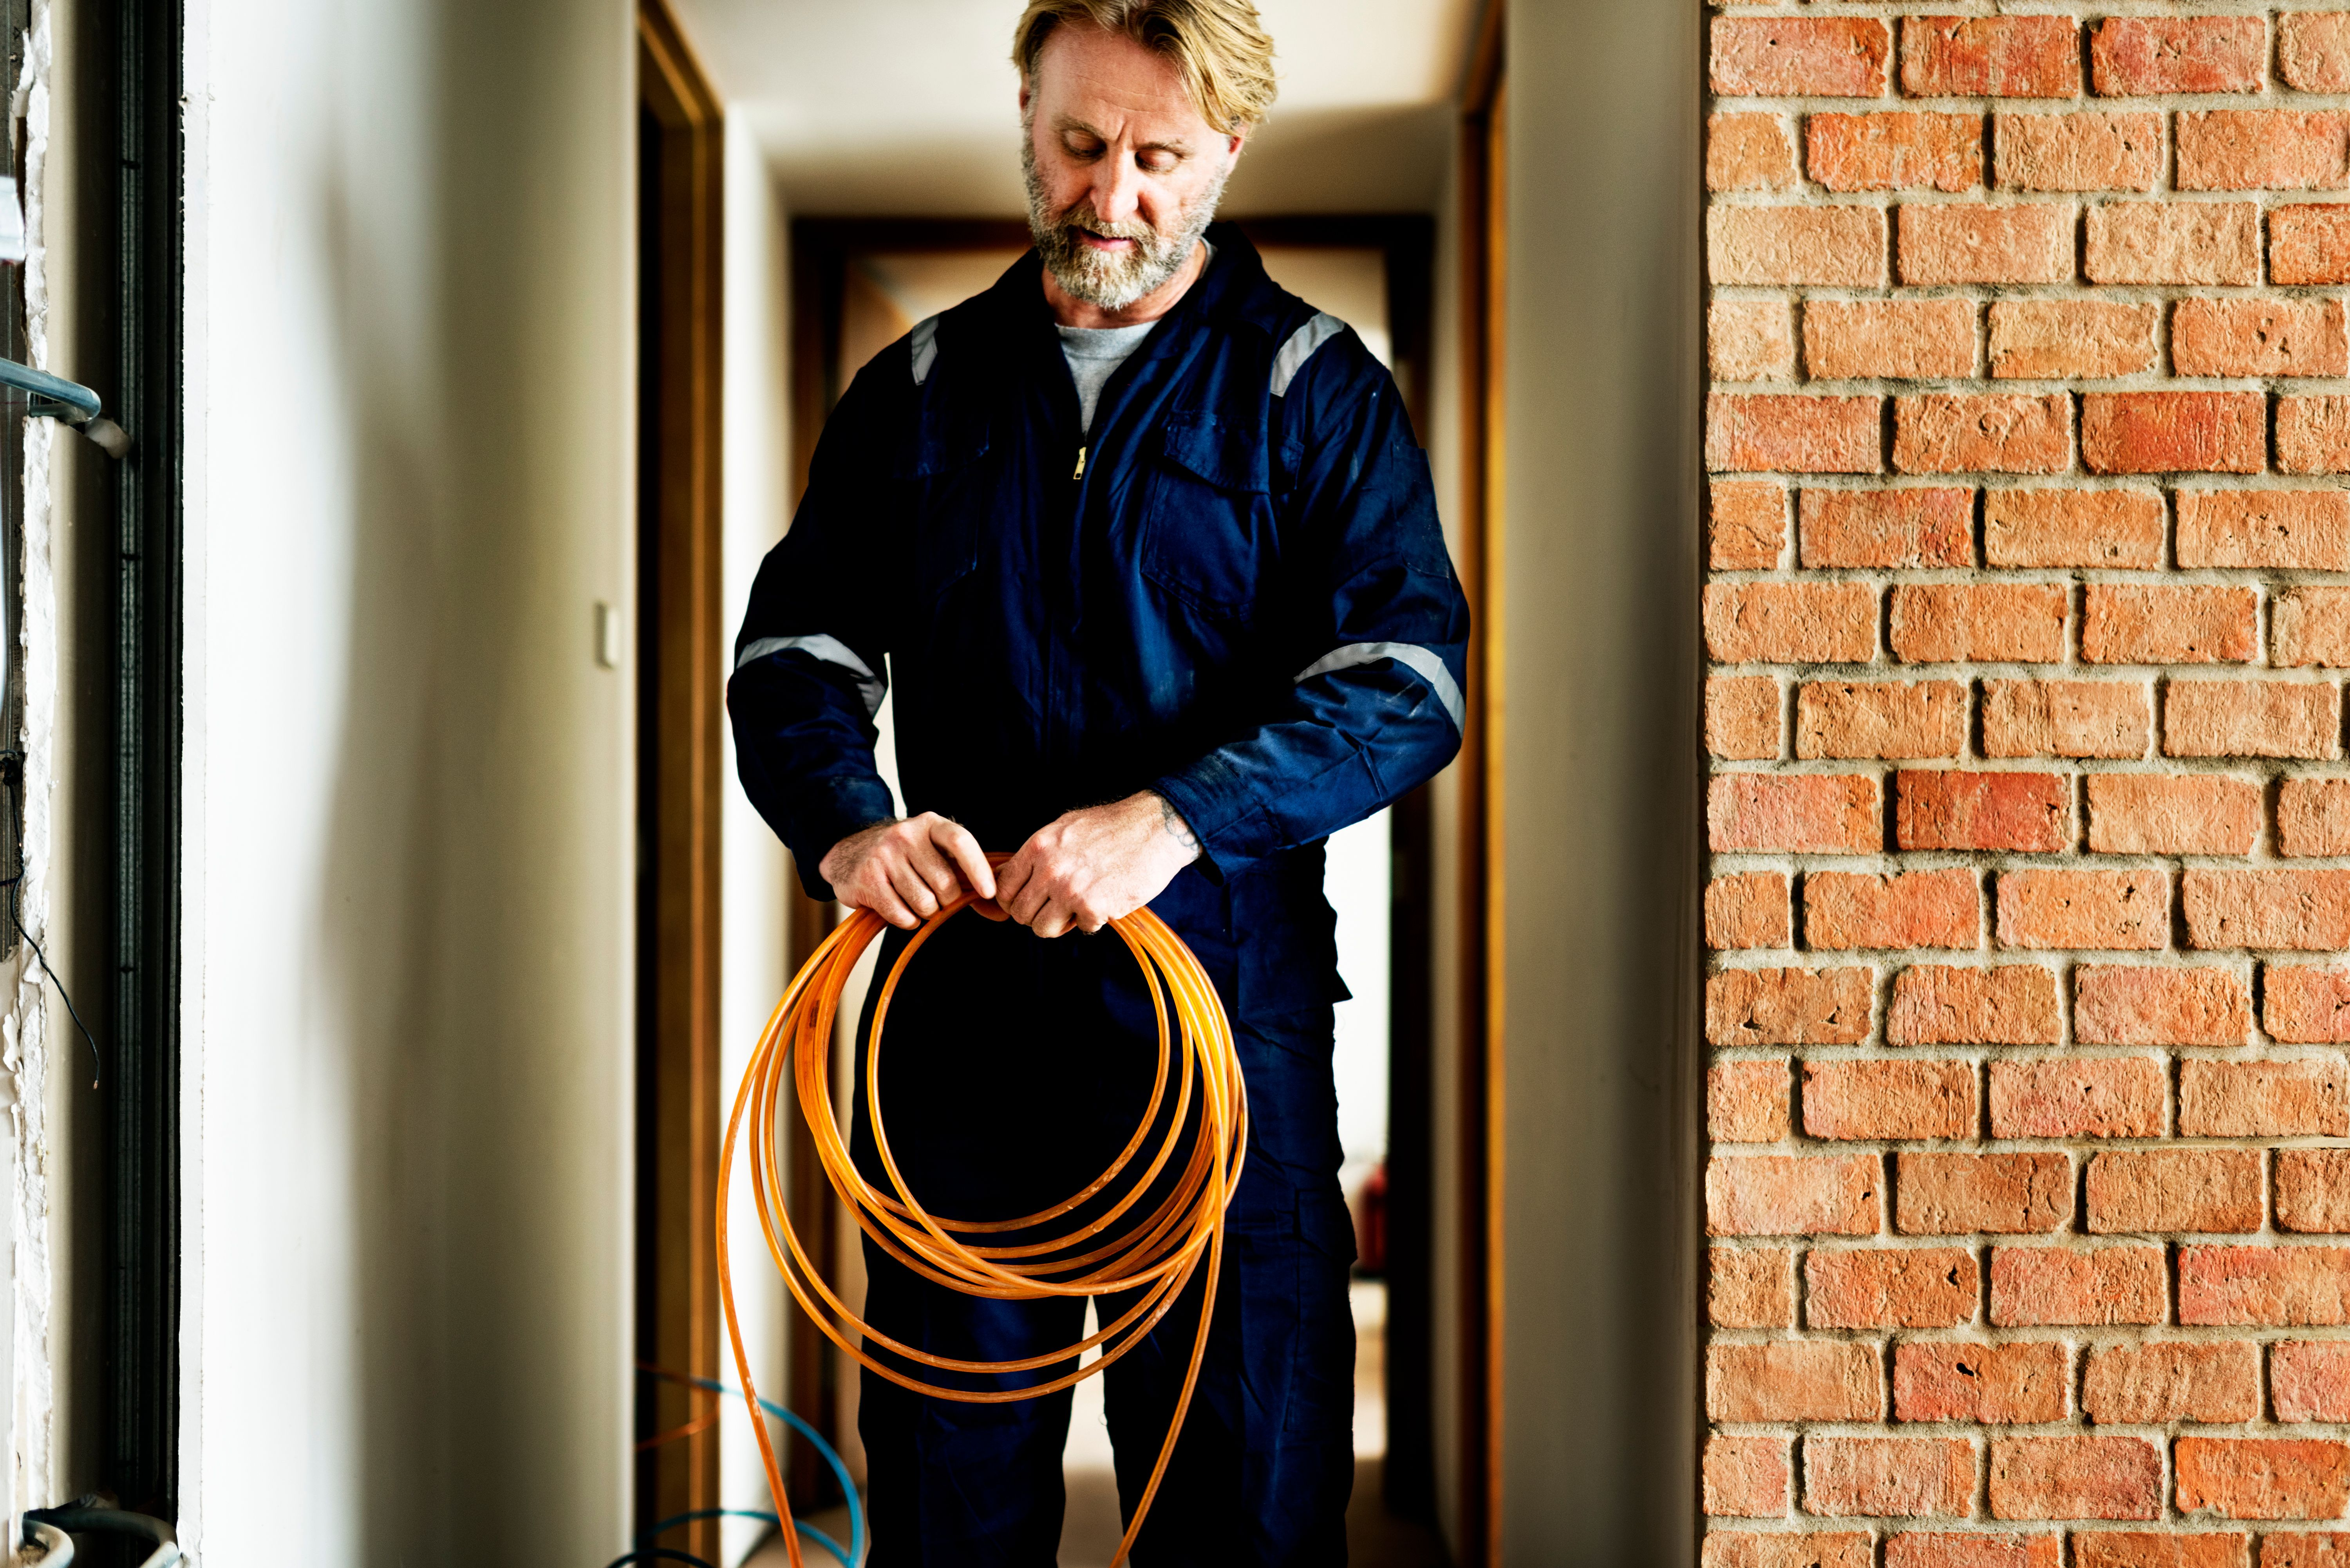 An electrician working on an installation at a house